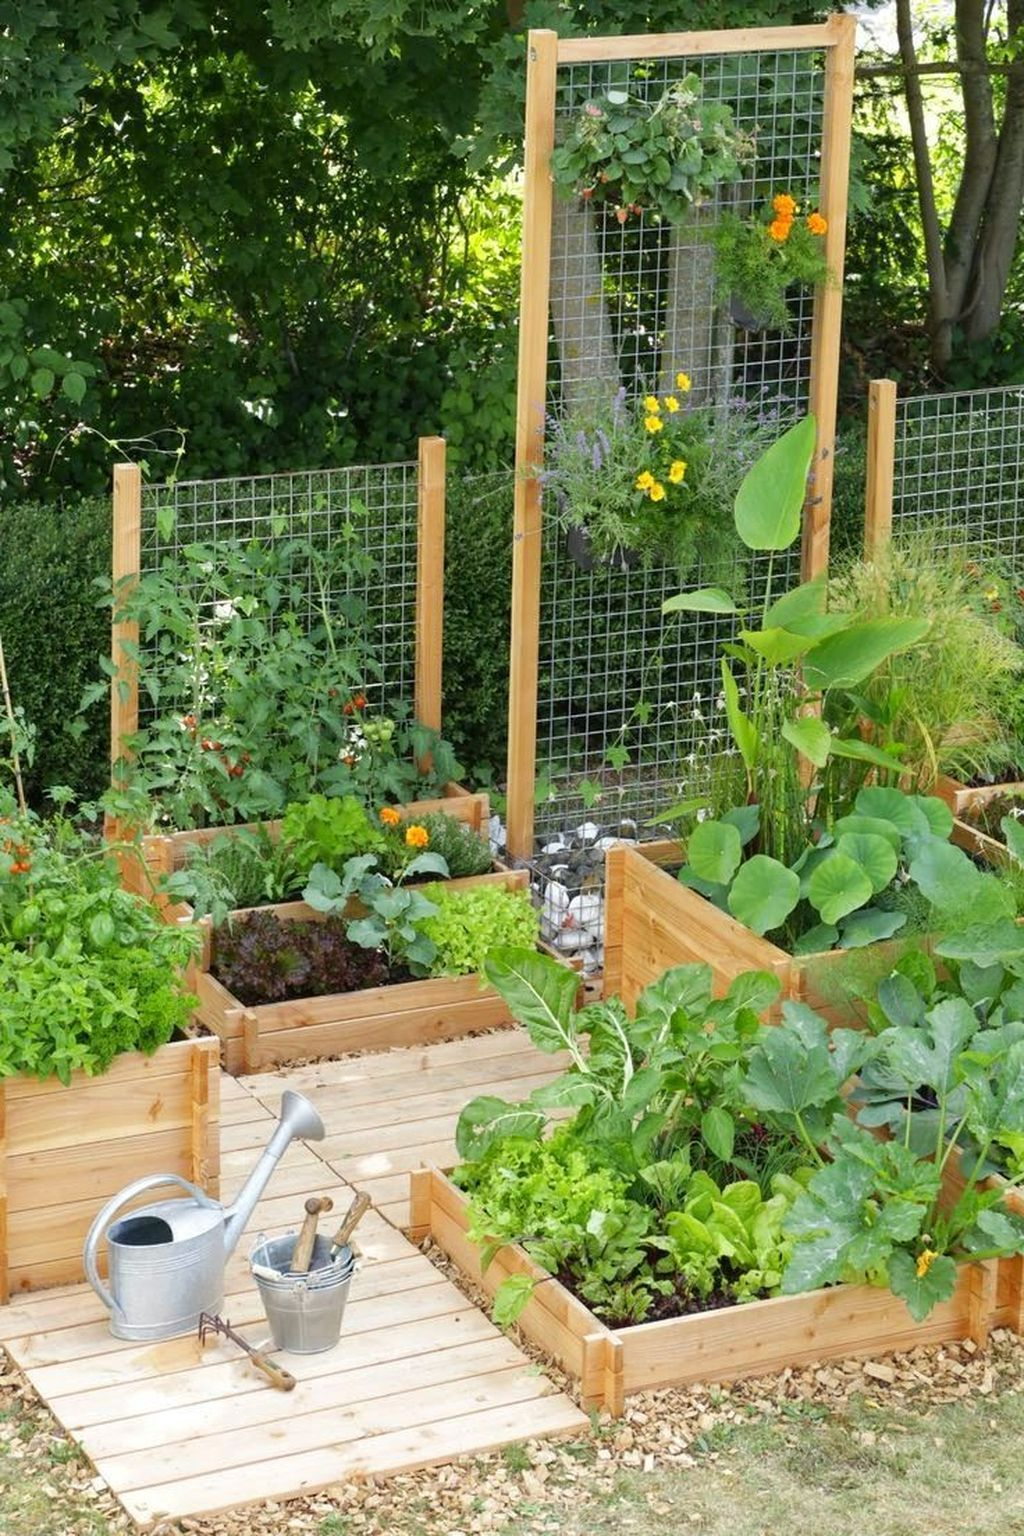 30 Cozy Small Vegetable Garden Ideas On A Budget Small